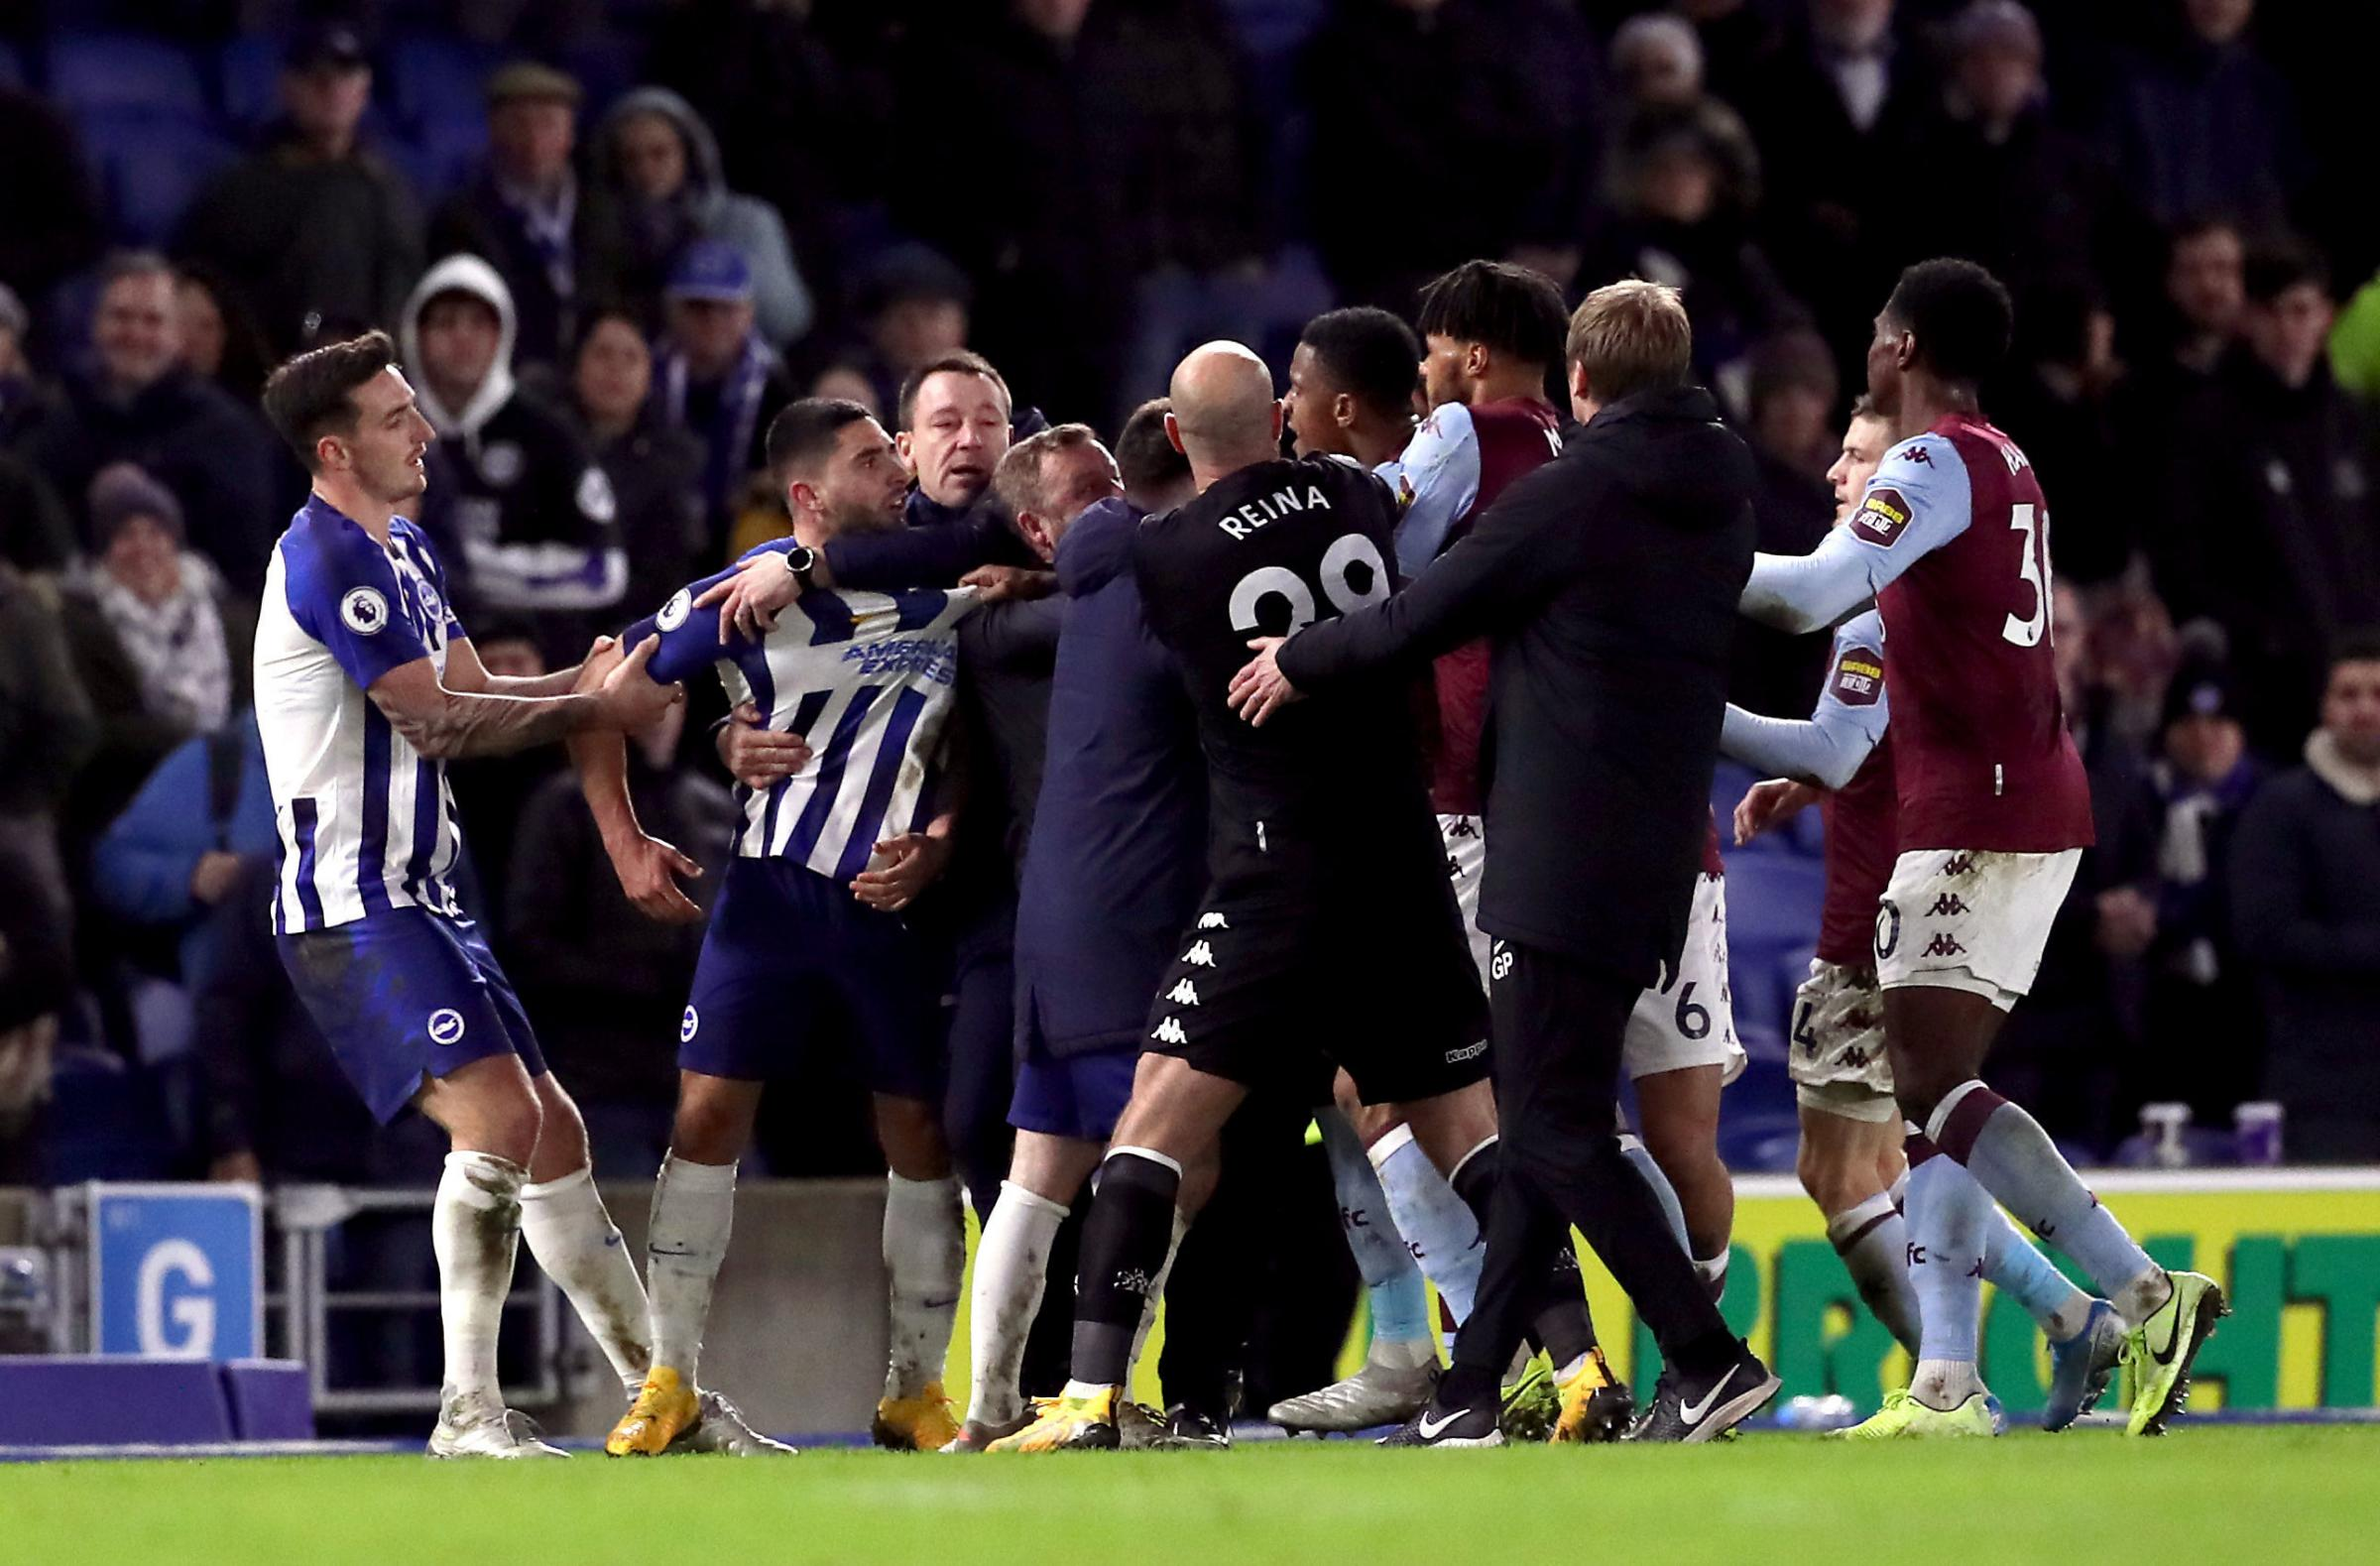 Neal Maupay involved in heated exchange after final whistle as Albion draw with Villa